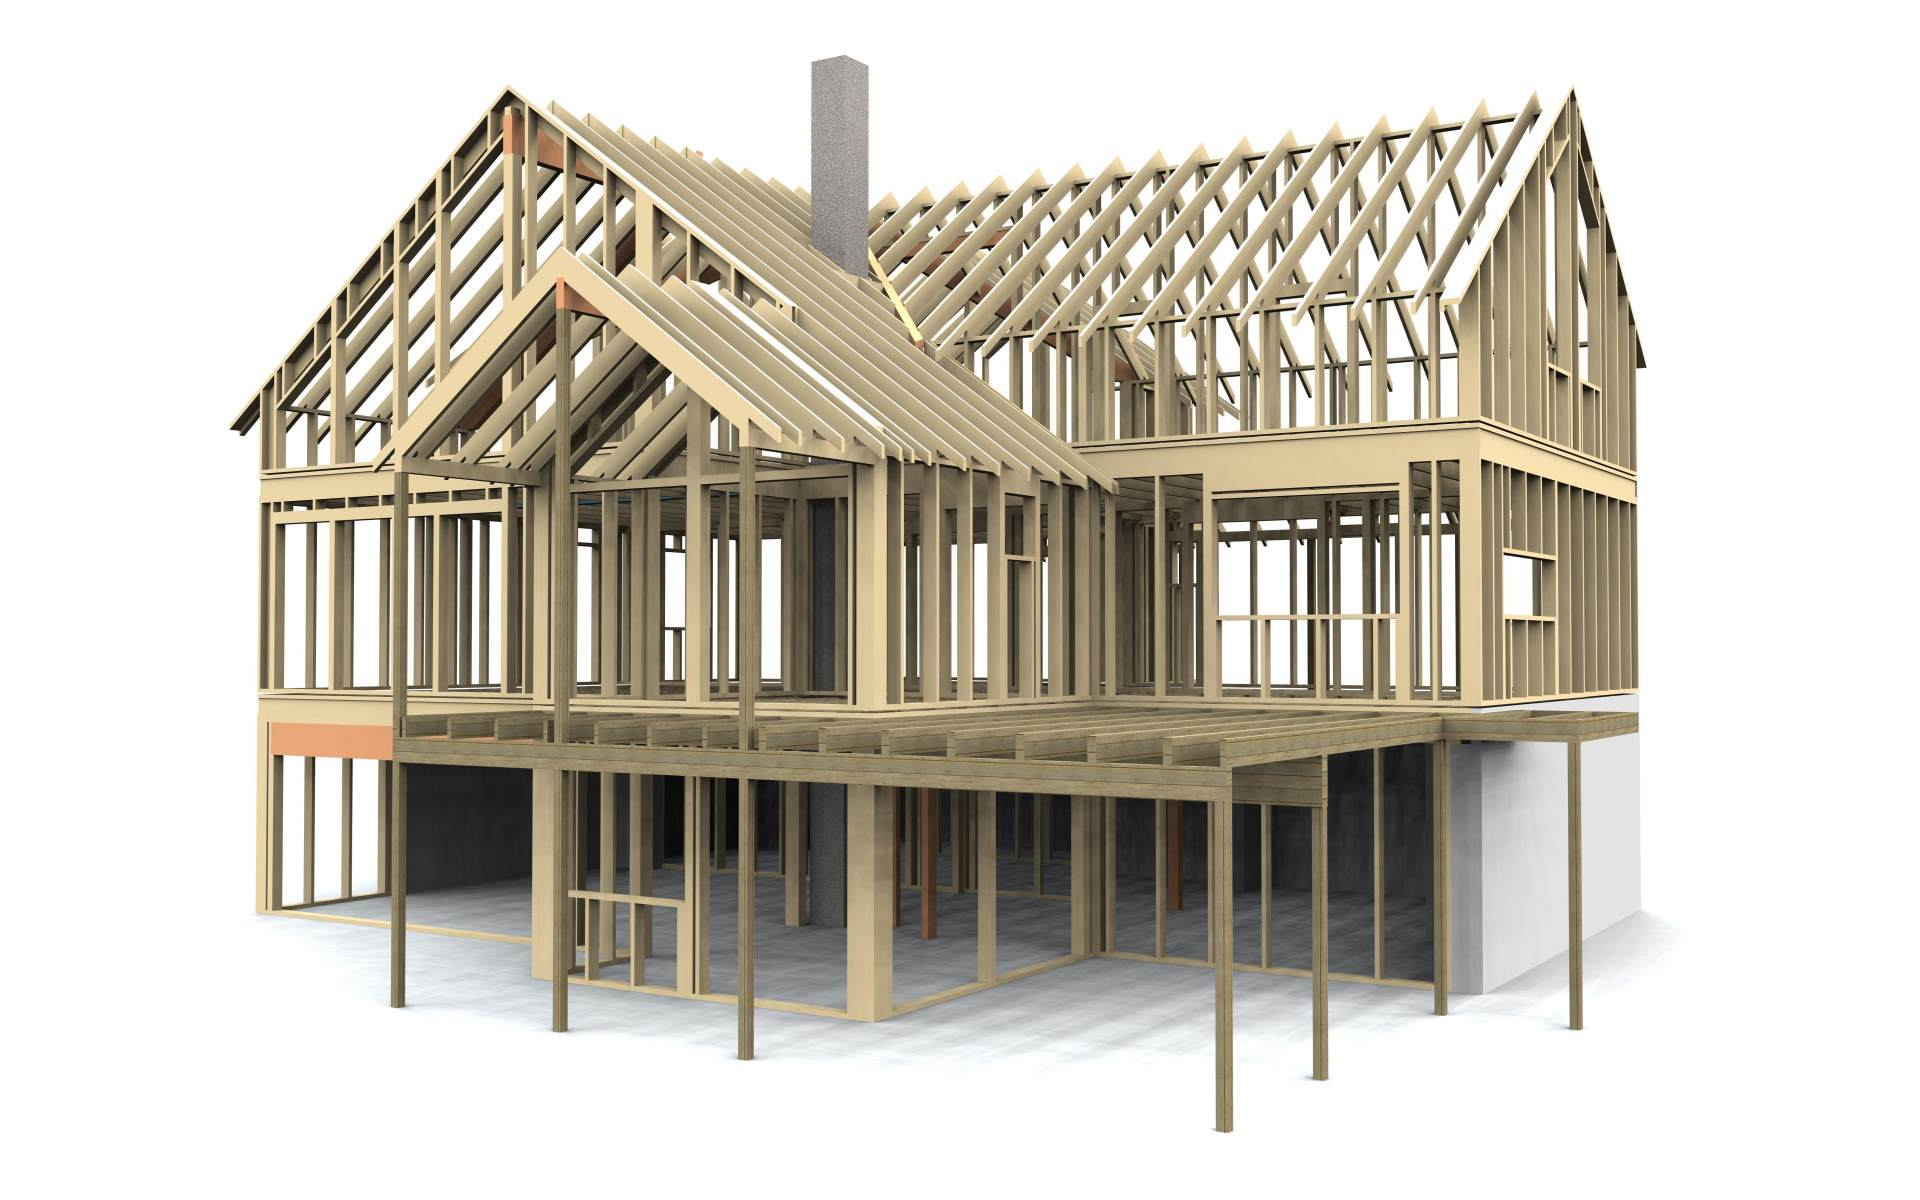 Vertex BD Timber Framing